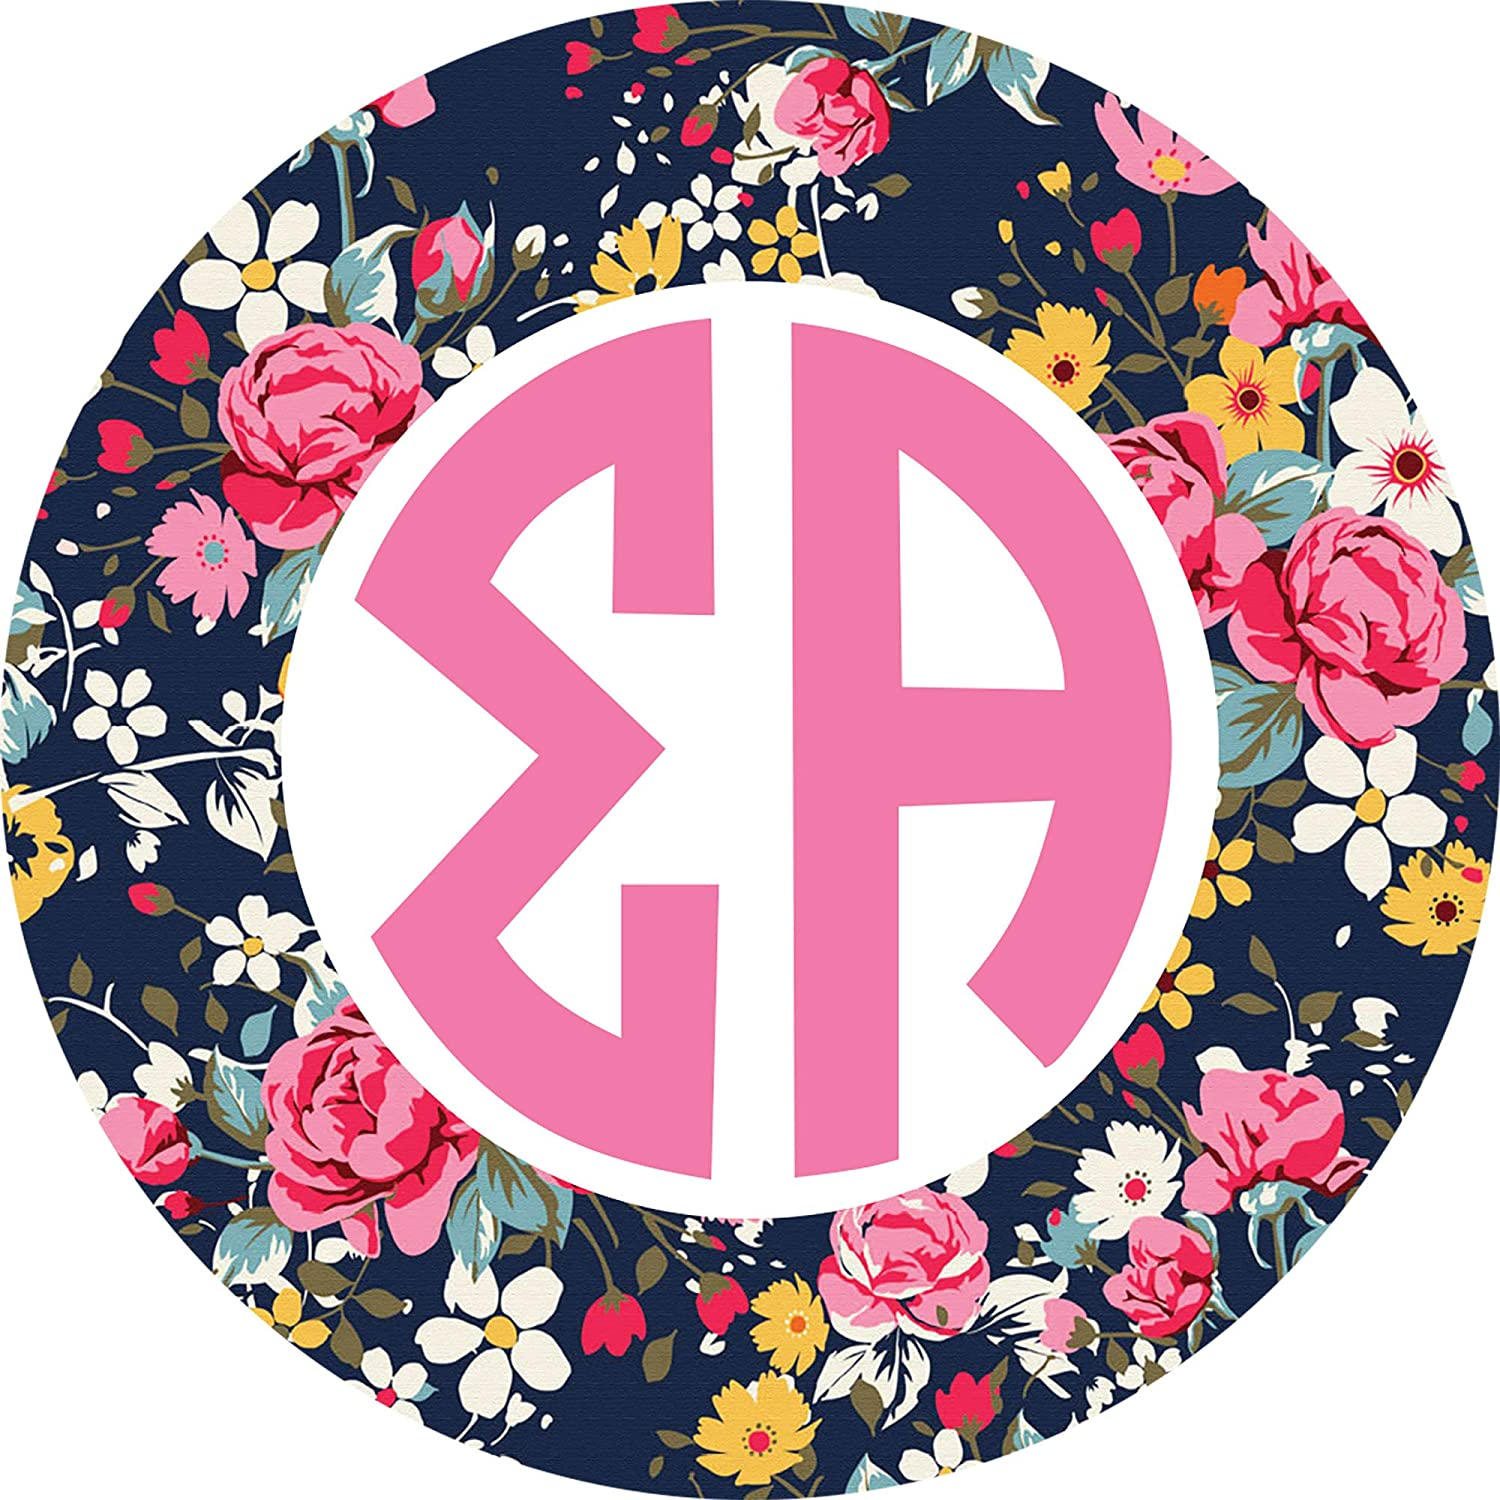 Sigma Alpha Circle Floral Monogram Sticker 3 Inch Tall Sorority Decal Greek for Window Laptop Computer Car